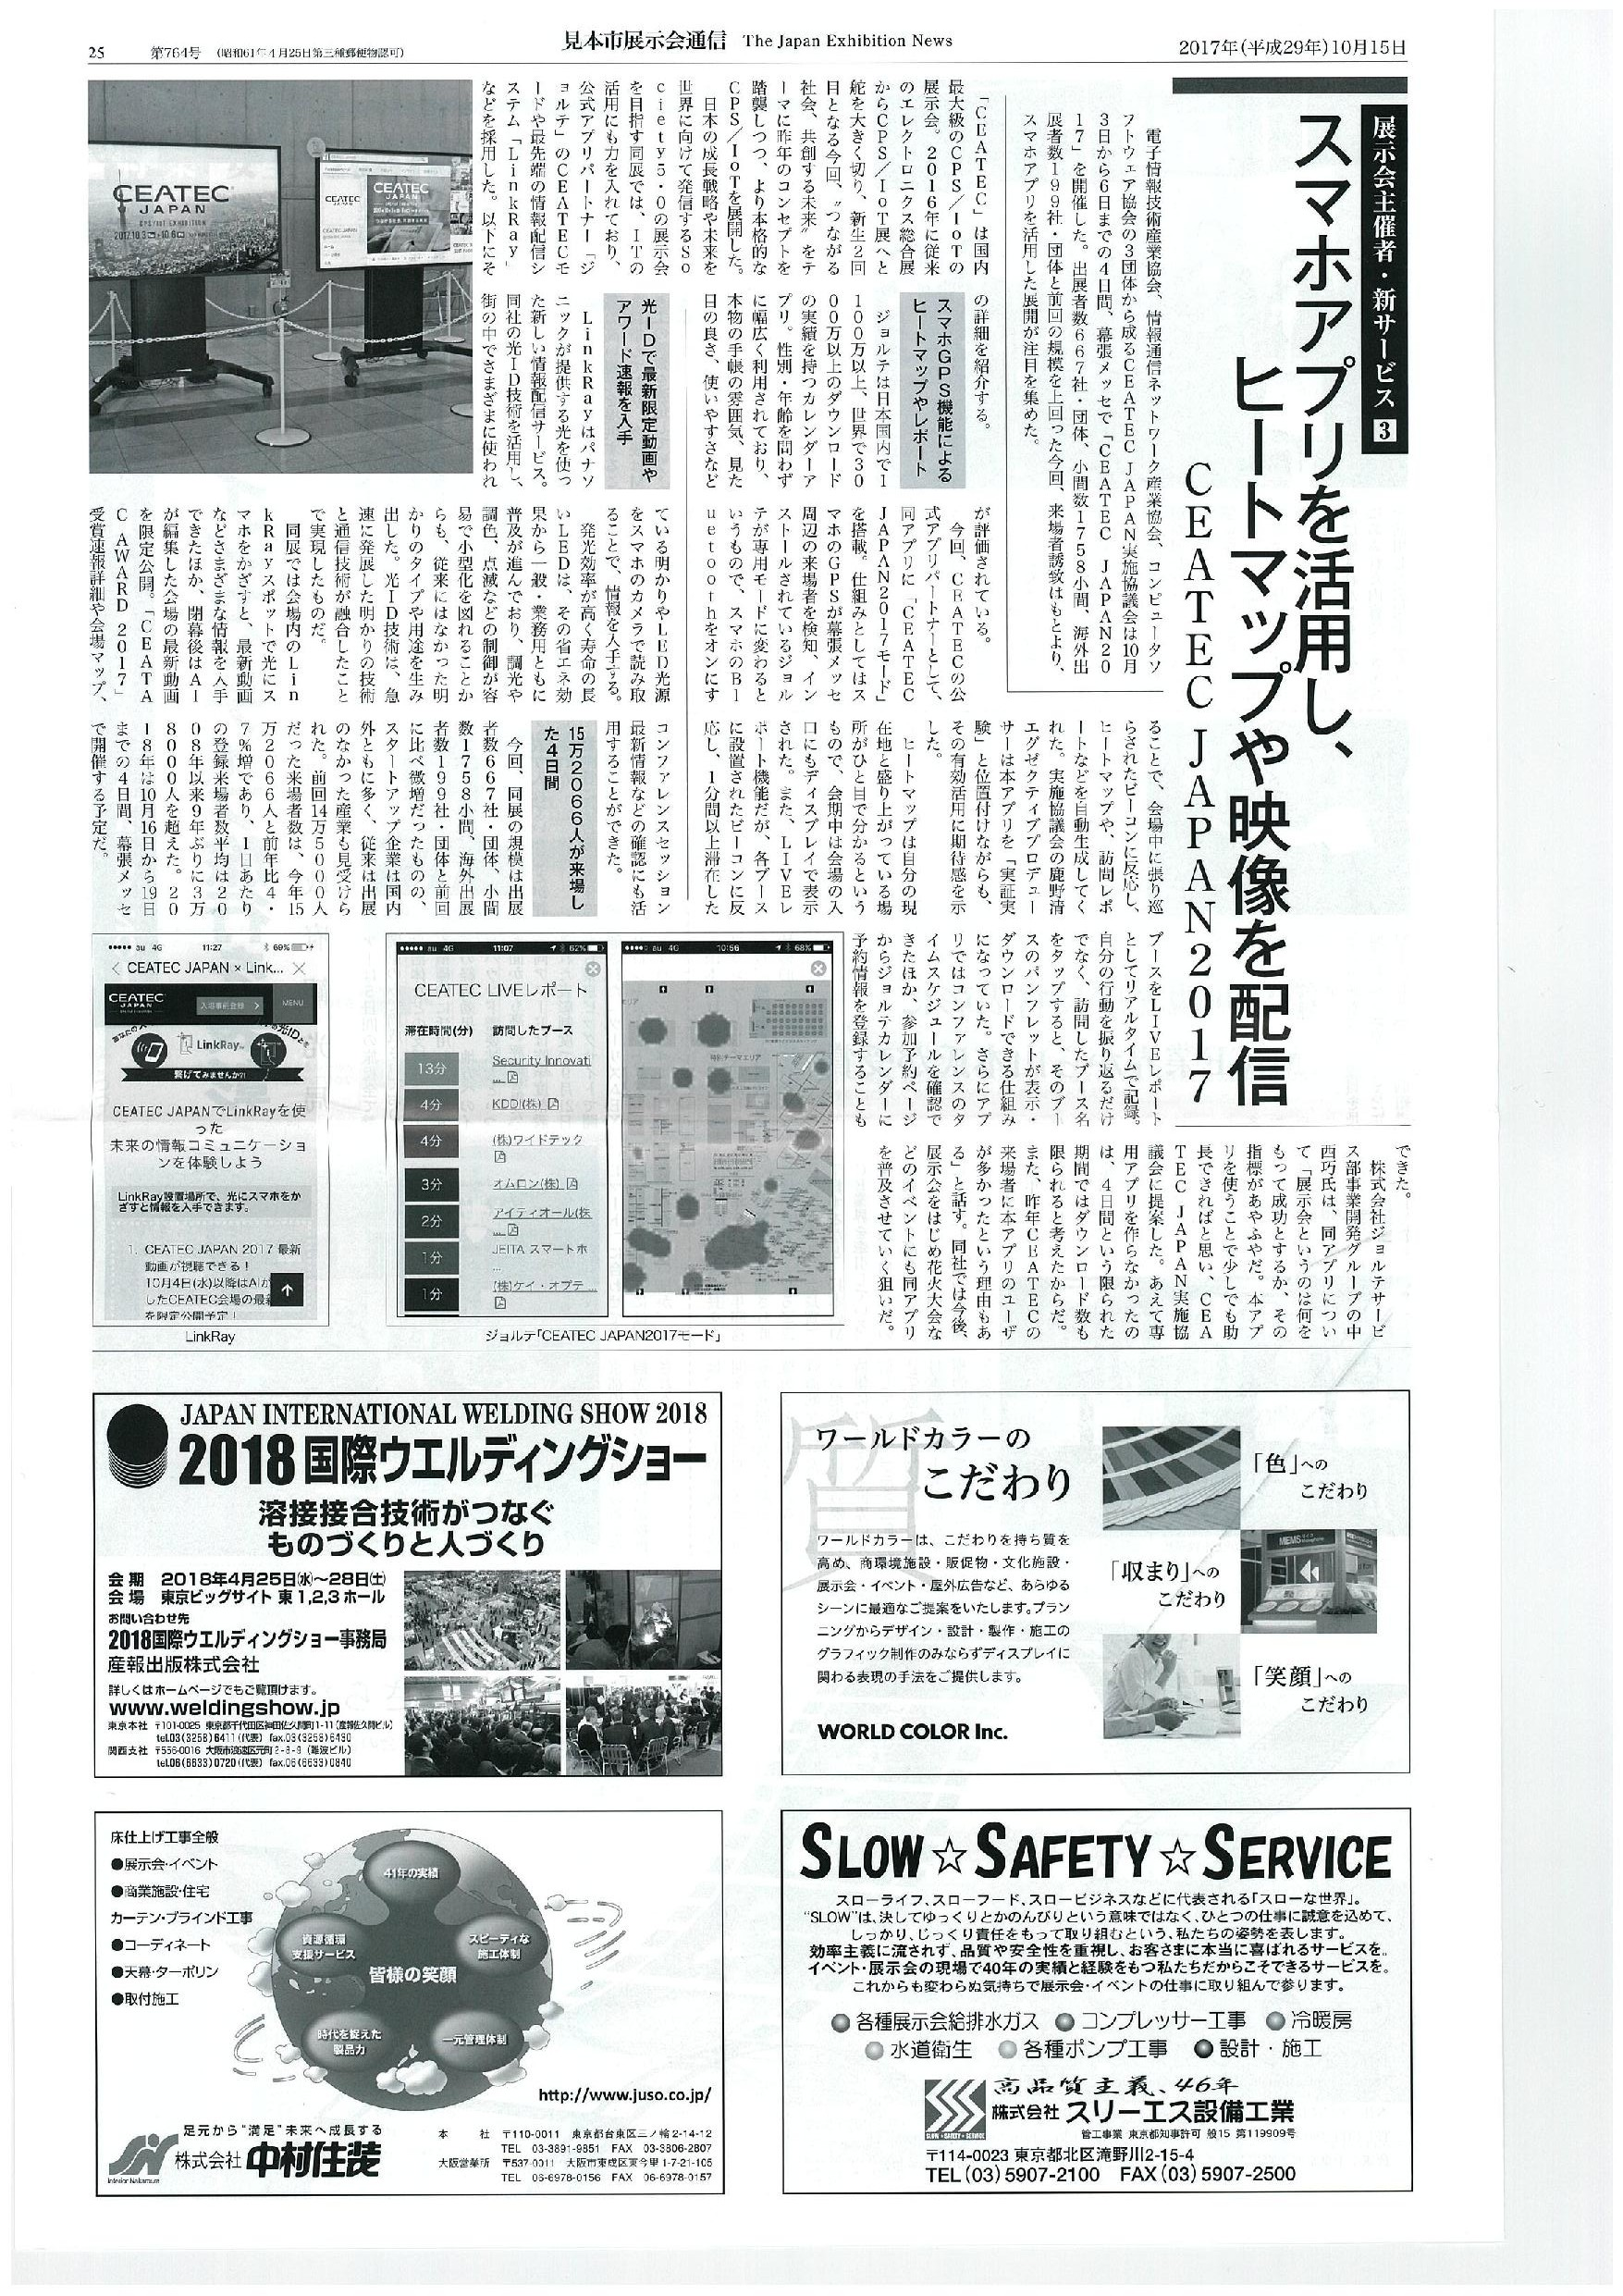 Ceatec news-page-001 (1)